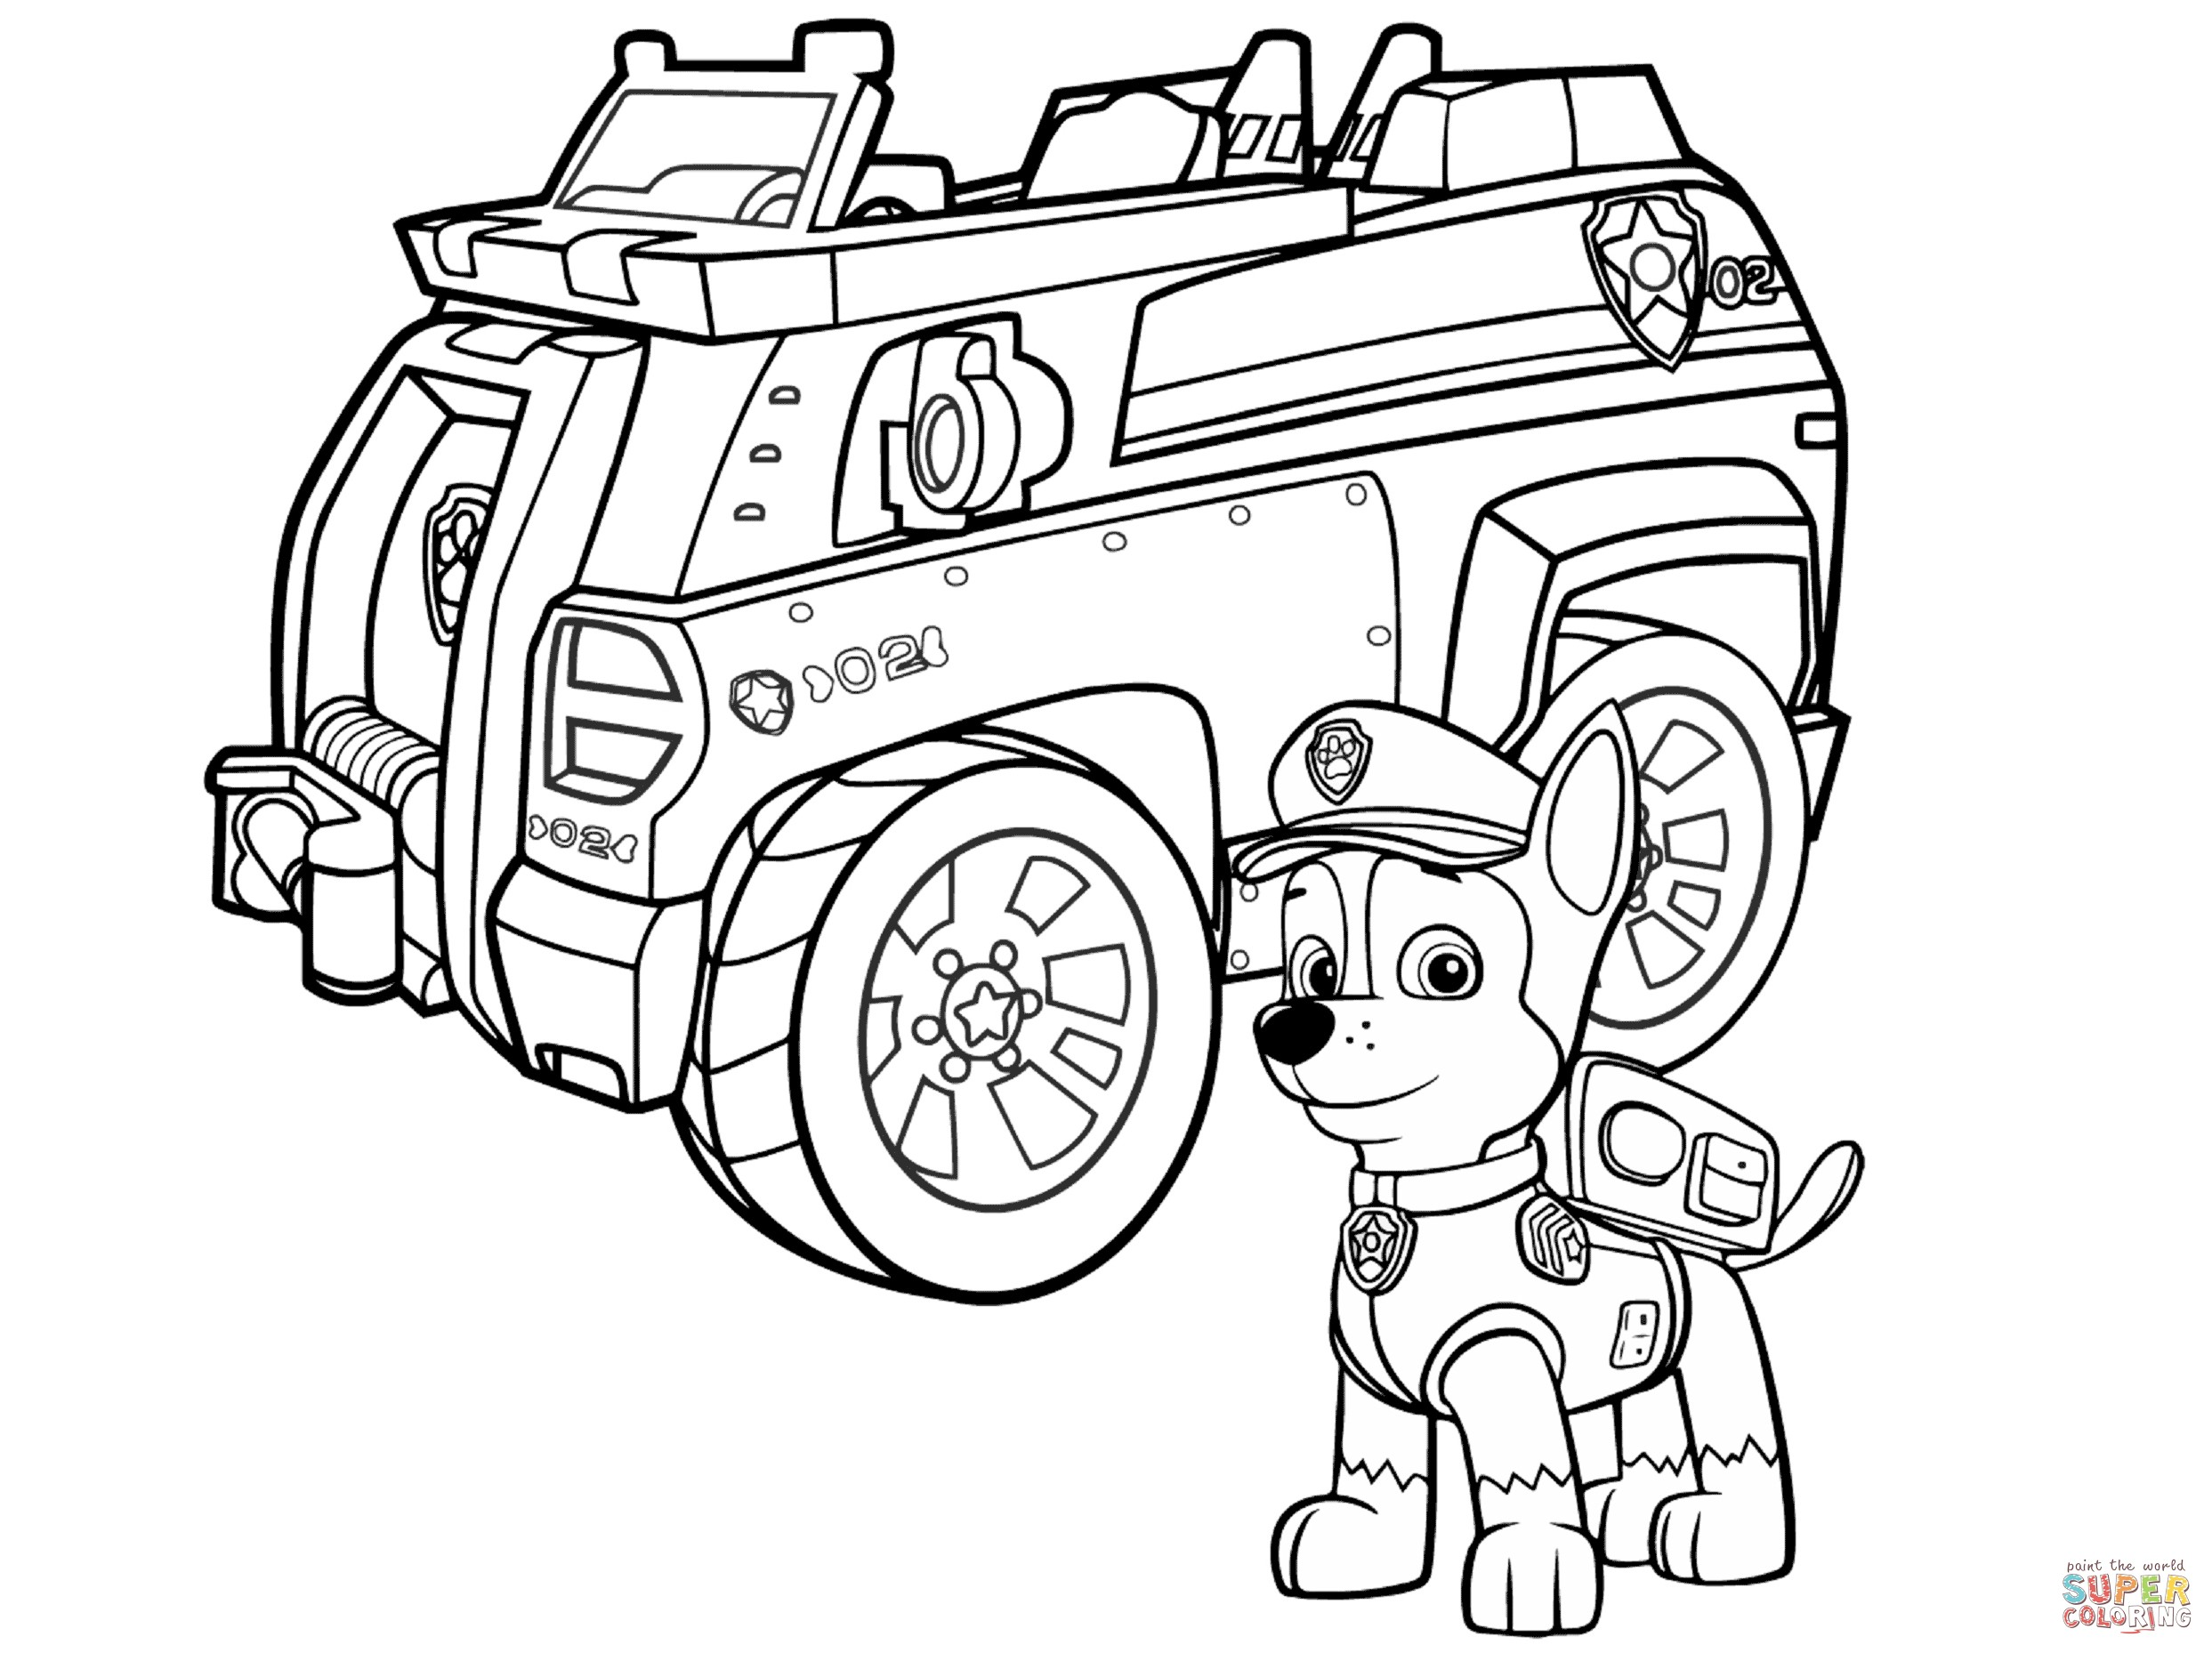 2486x1858 Swat Team Coloring Pages Unique Police Car Coloring Page Coloring